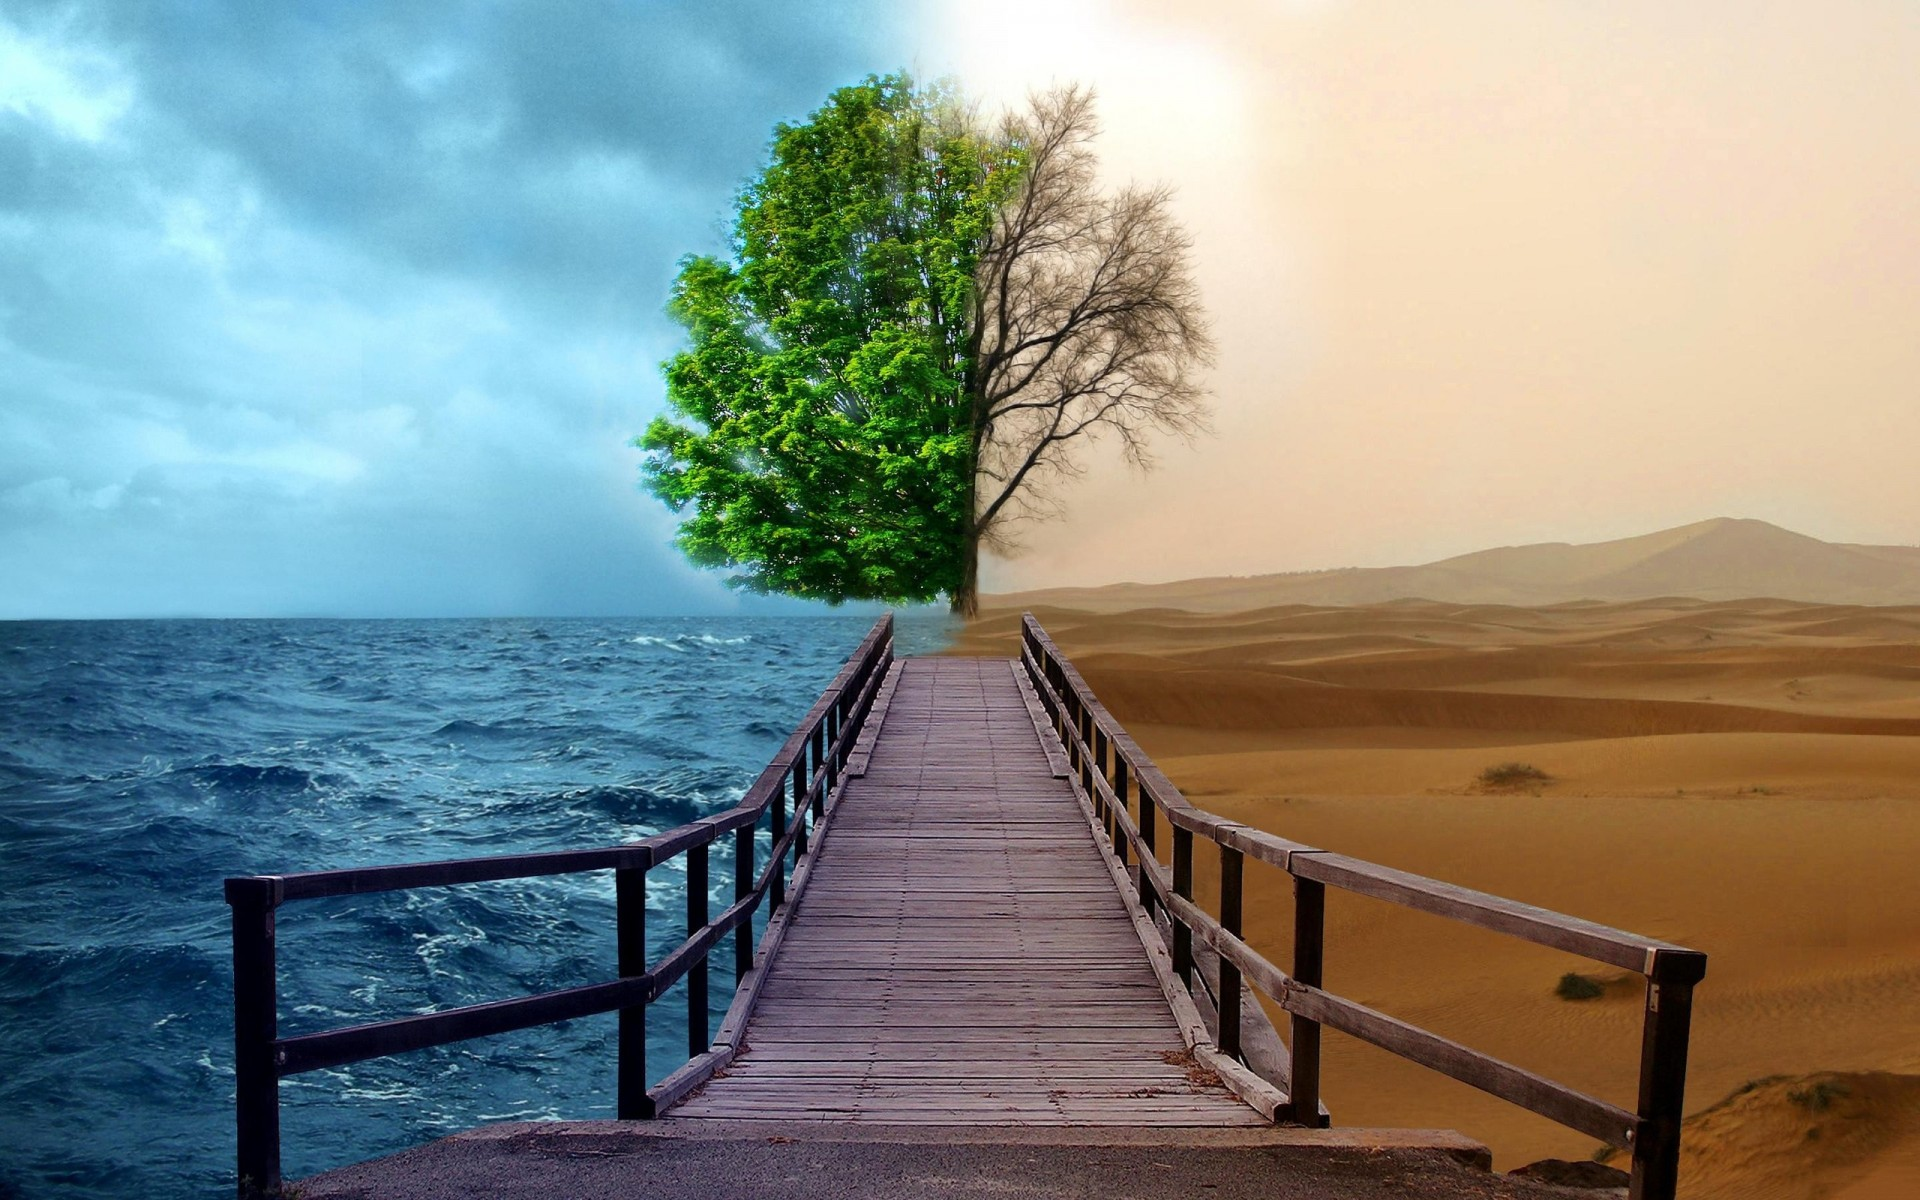 path sea tree desert water